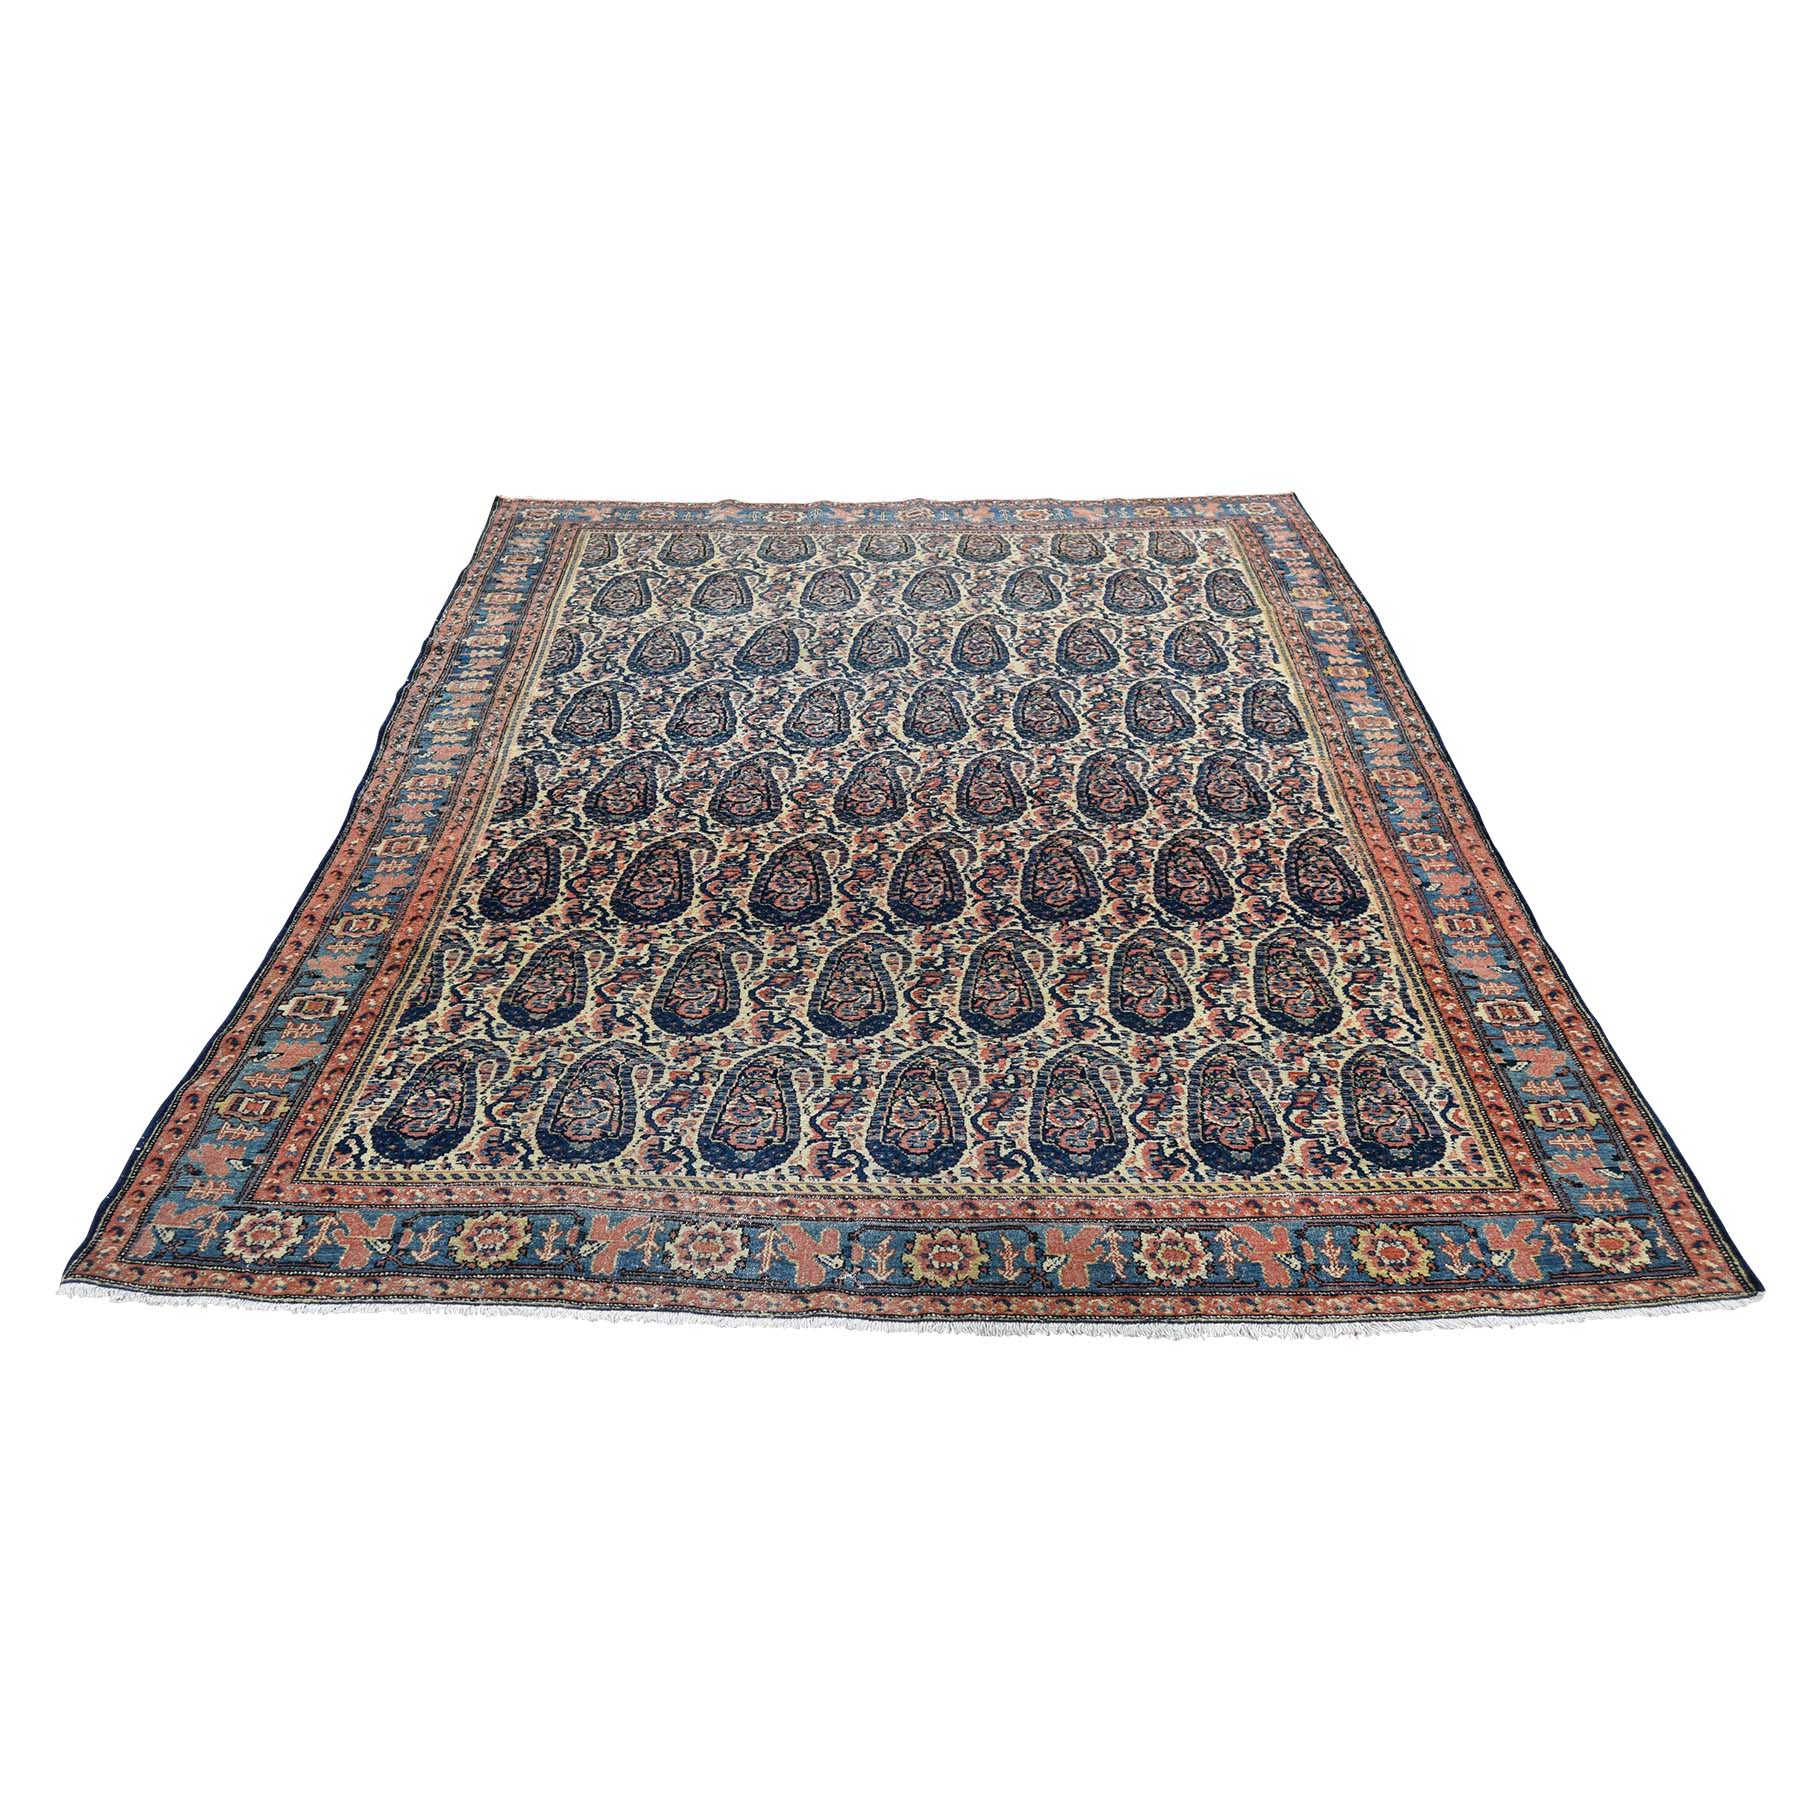 "4'4""X6'4"" Antique Persian Senneh Paisley Design Exc Condition Hand-Knotted Oriental Rug moad6dc7"